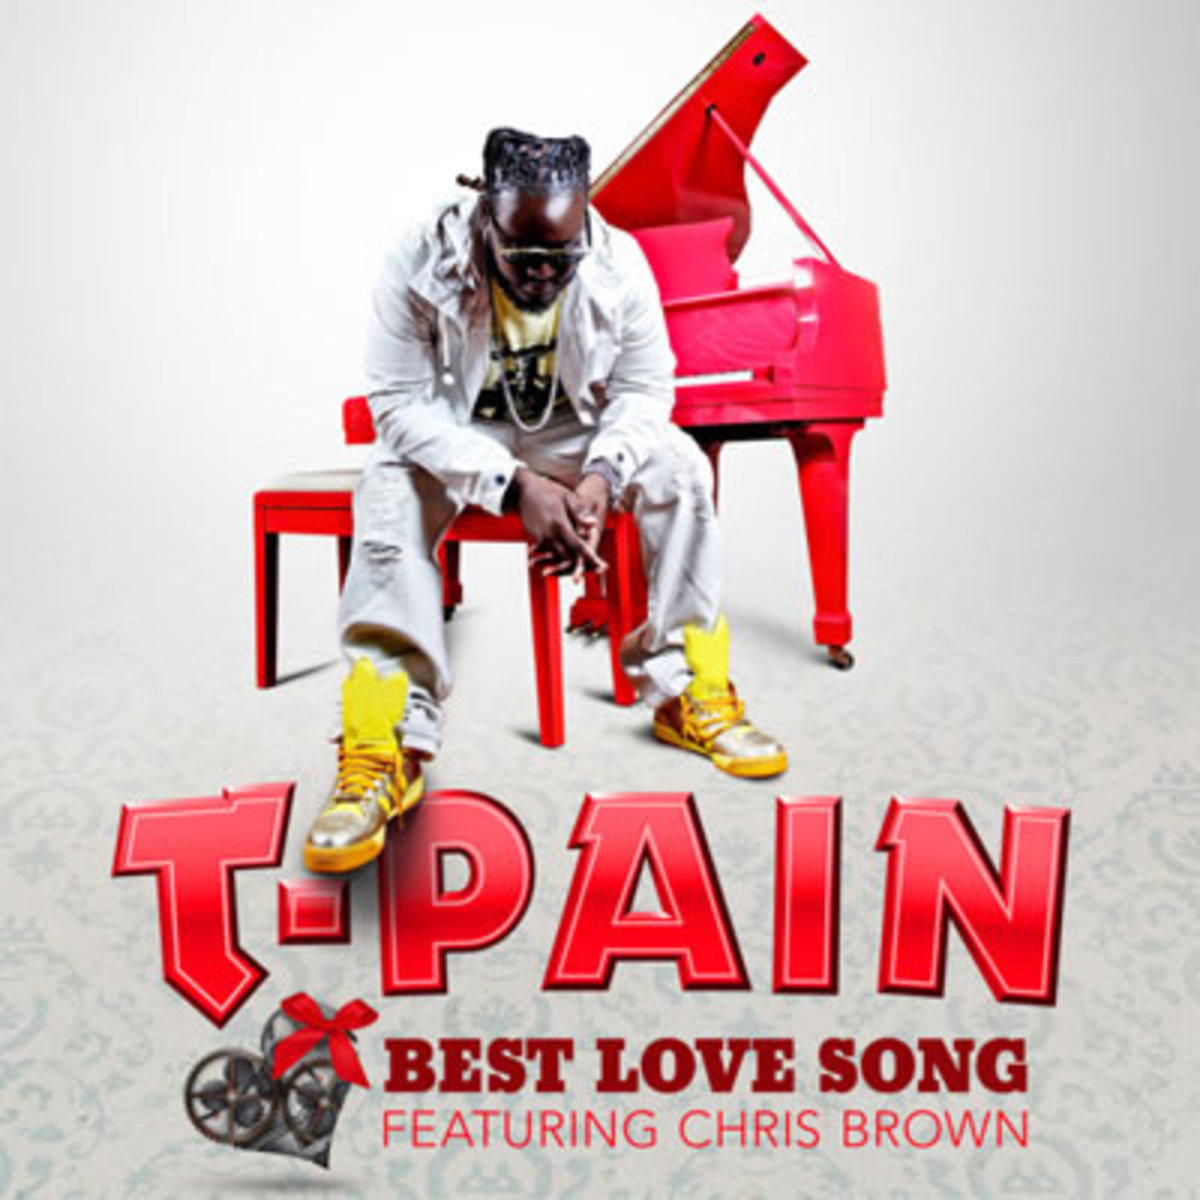 best love song chris brown free mp3 download